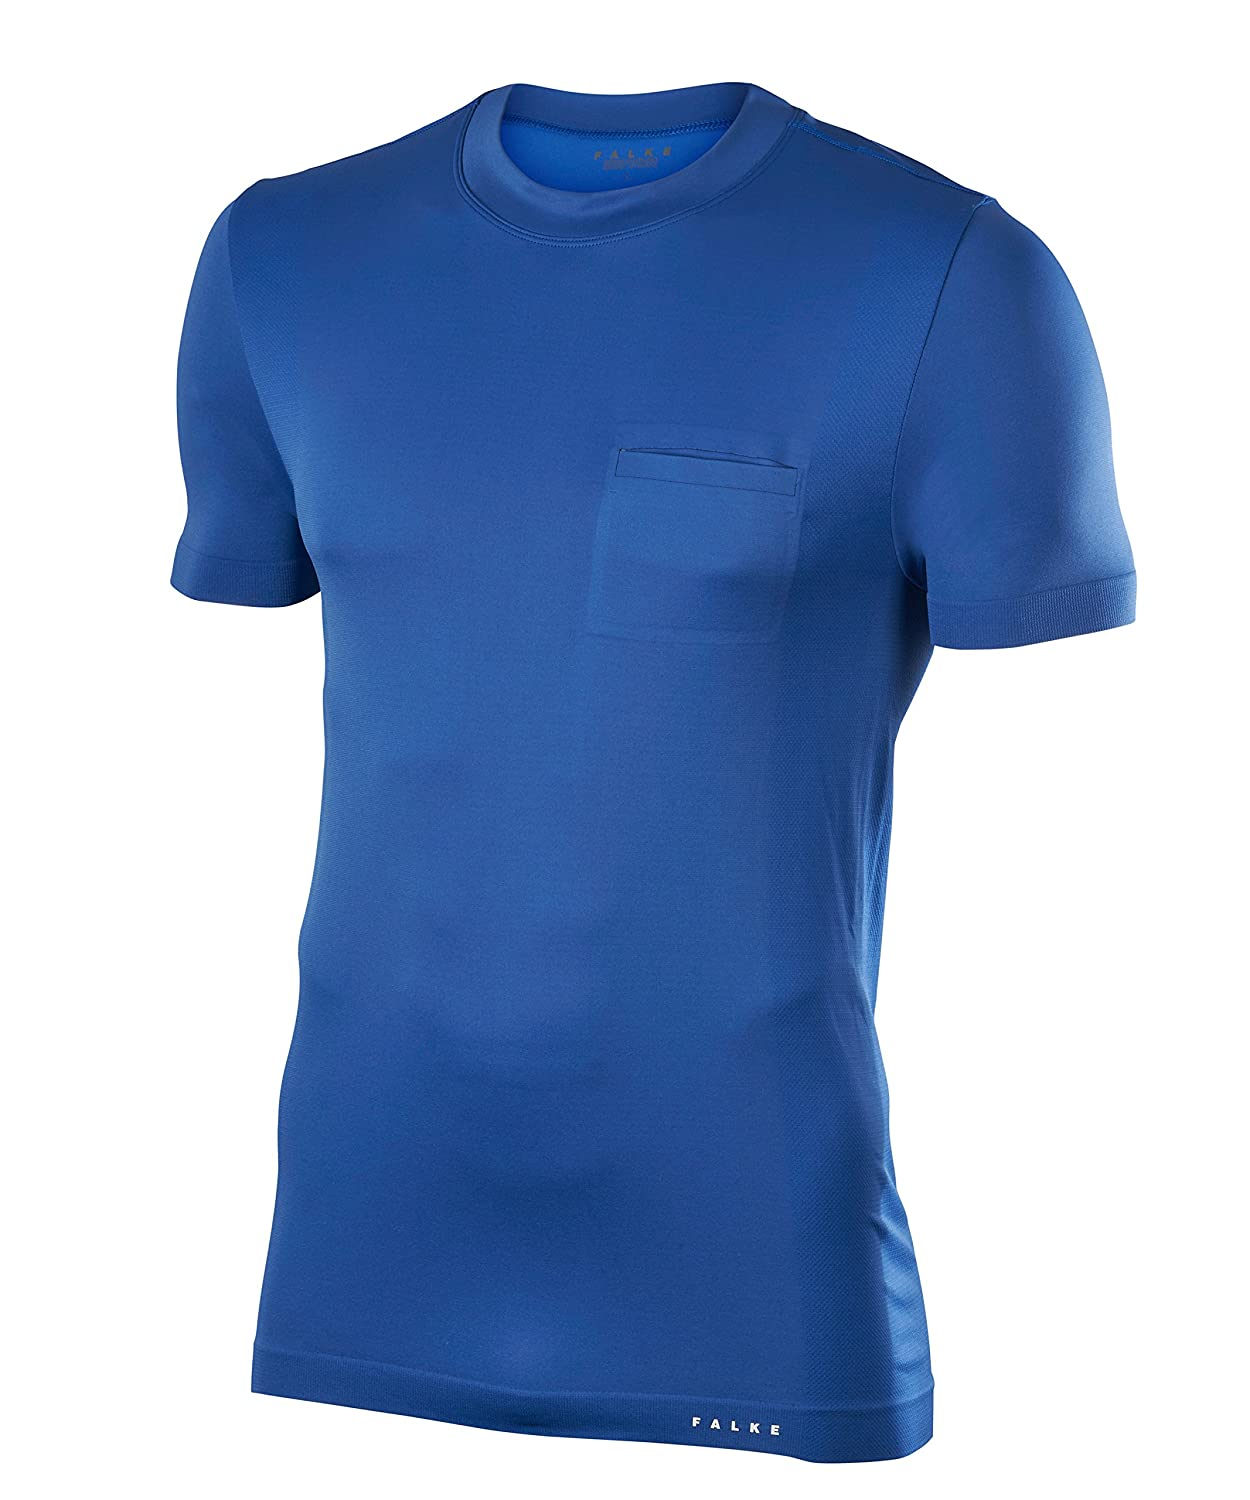 FALKE Herren Shortsleeved Shirt Men Sportbekleidung